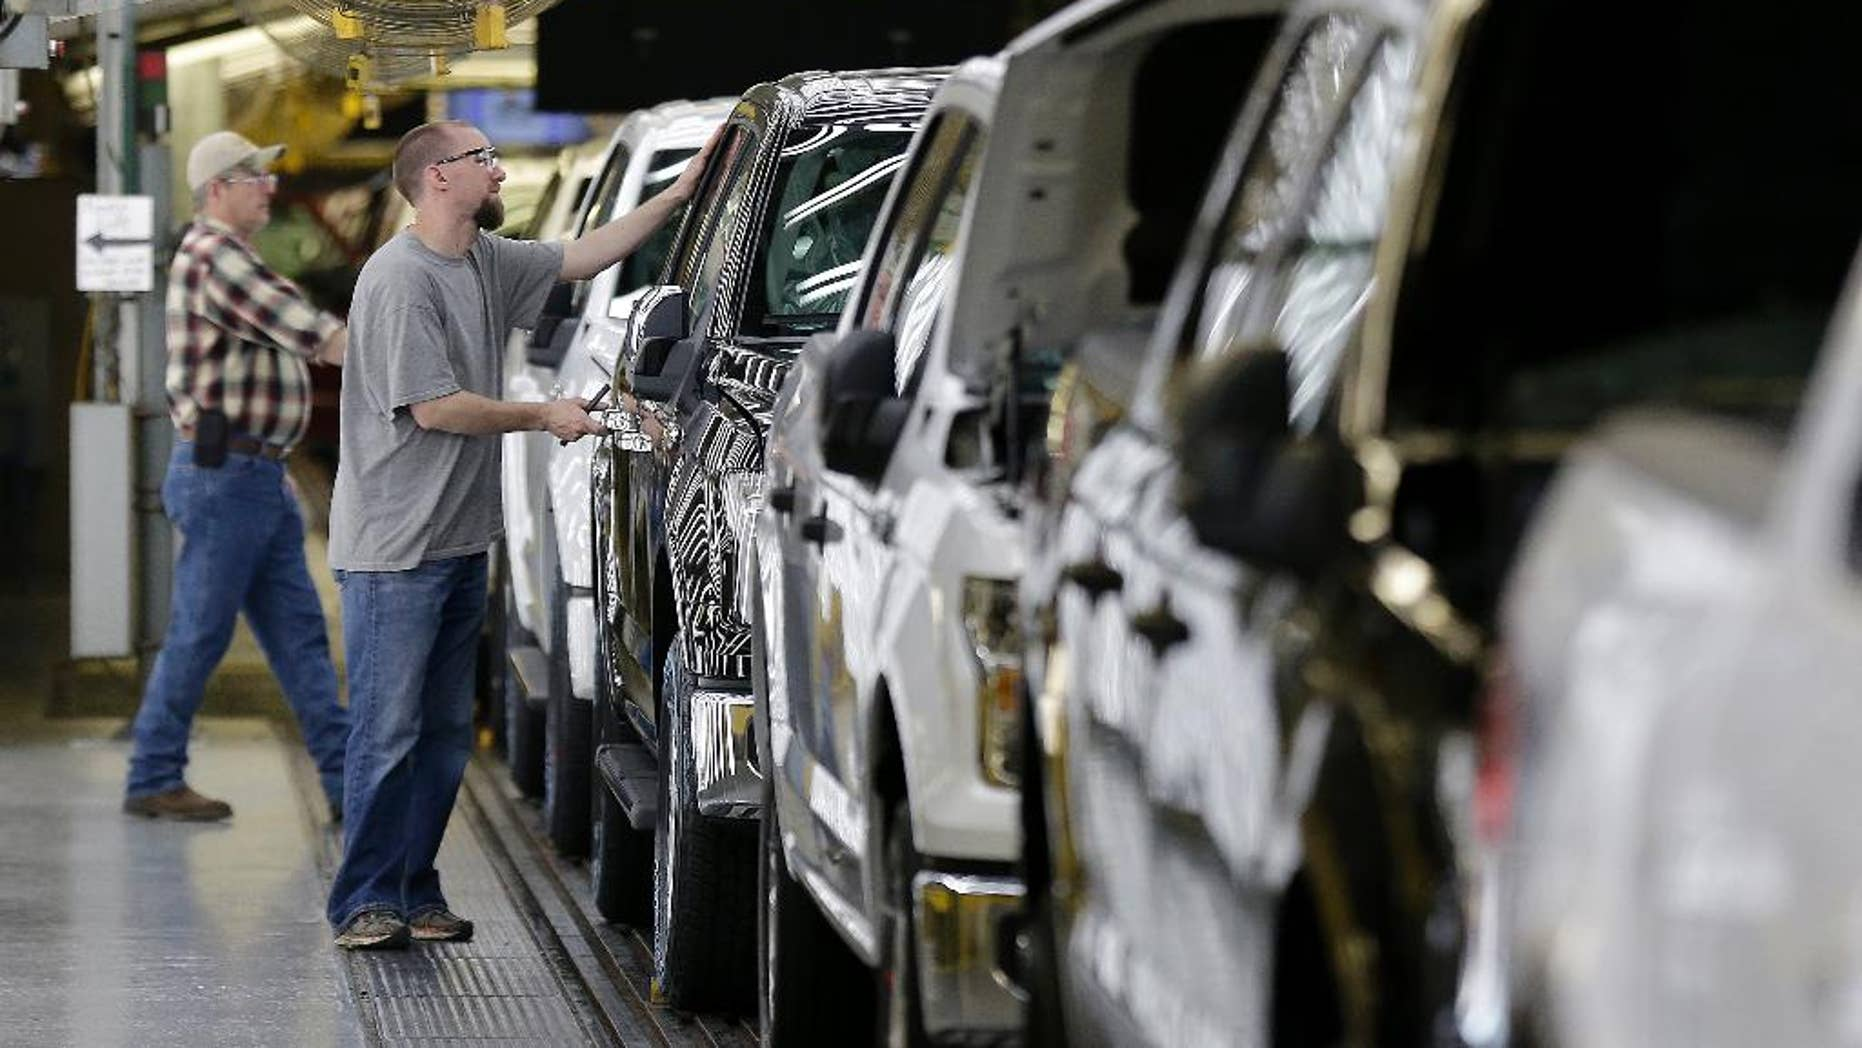 FILE - In this March 13, 2015, file photo, a worker inspects a new 2015 aluminum-alloy body Ford F-150 truck at the company's Kansas City Assembly Plant, in Claycomo, Mo. The Commerce Department releases its October report on orders for durable goods, items expected to last at least three years, on Wednesday, Nov. 25, 2015. (AP Photo/Charlie Riedel, File)